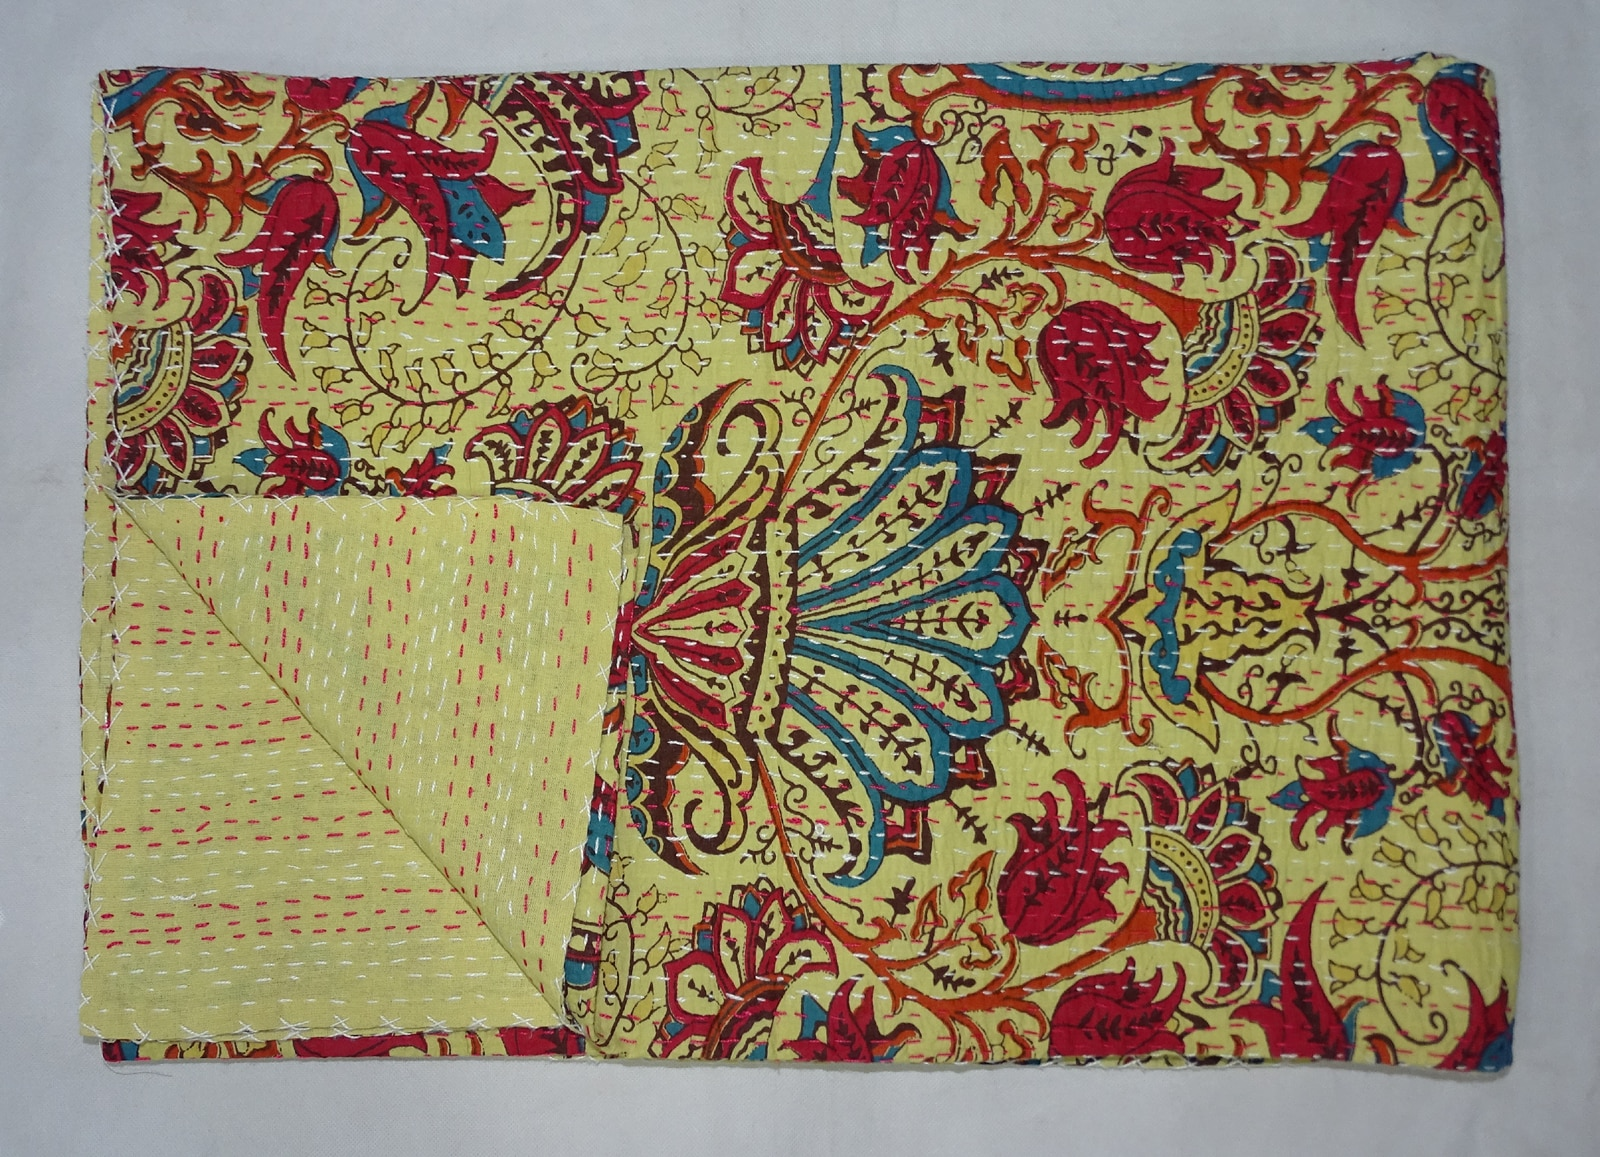 Kantha Quilt   Indian Kantha Quilt Twin Size Cotton Bedsheet Handmade Mughal Bedspread Throw   Size:- 60x90.Inch (Twin) Color:- Red Material;- Cotton  Pattern:- Mughal Floral    For More Product Please Visit Our eBay Store:- http://www.ebay.com/usr/bhavyainternational http://www.ebay.com/usr/nikitahomefurnishing Thank You Have A Nice Day